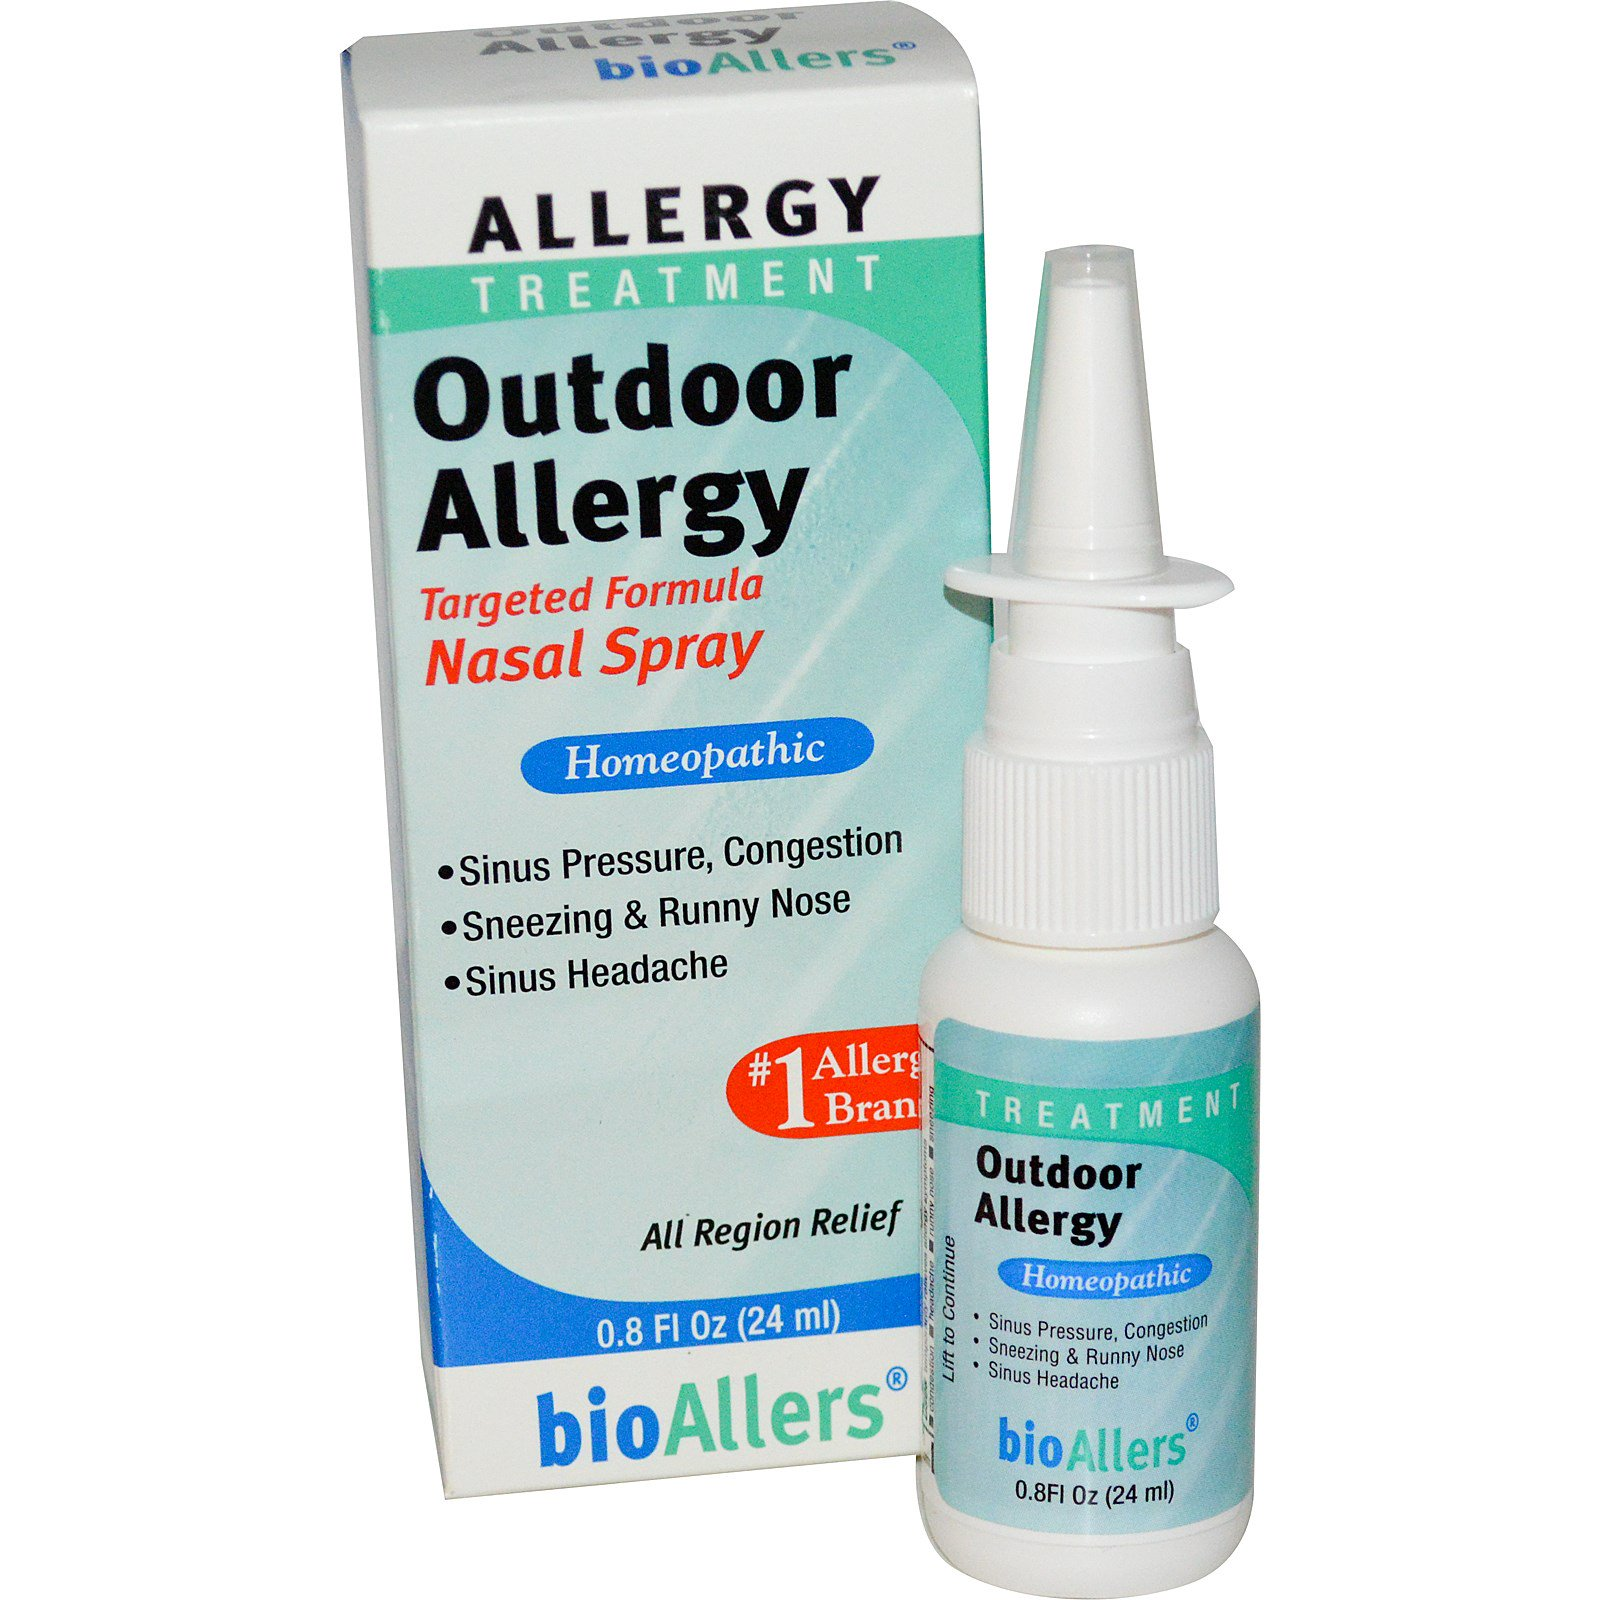 NatraBio bioAllers Allergy Treatment Outdoor Allergy Nasal